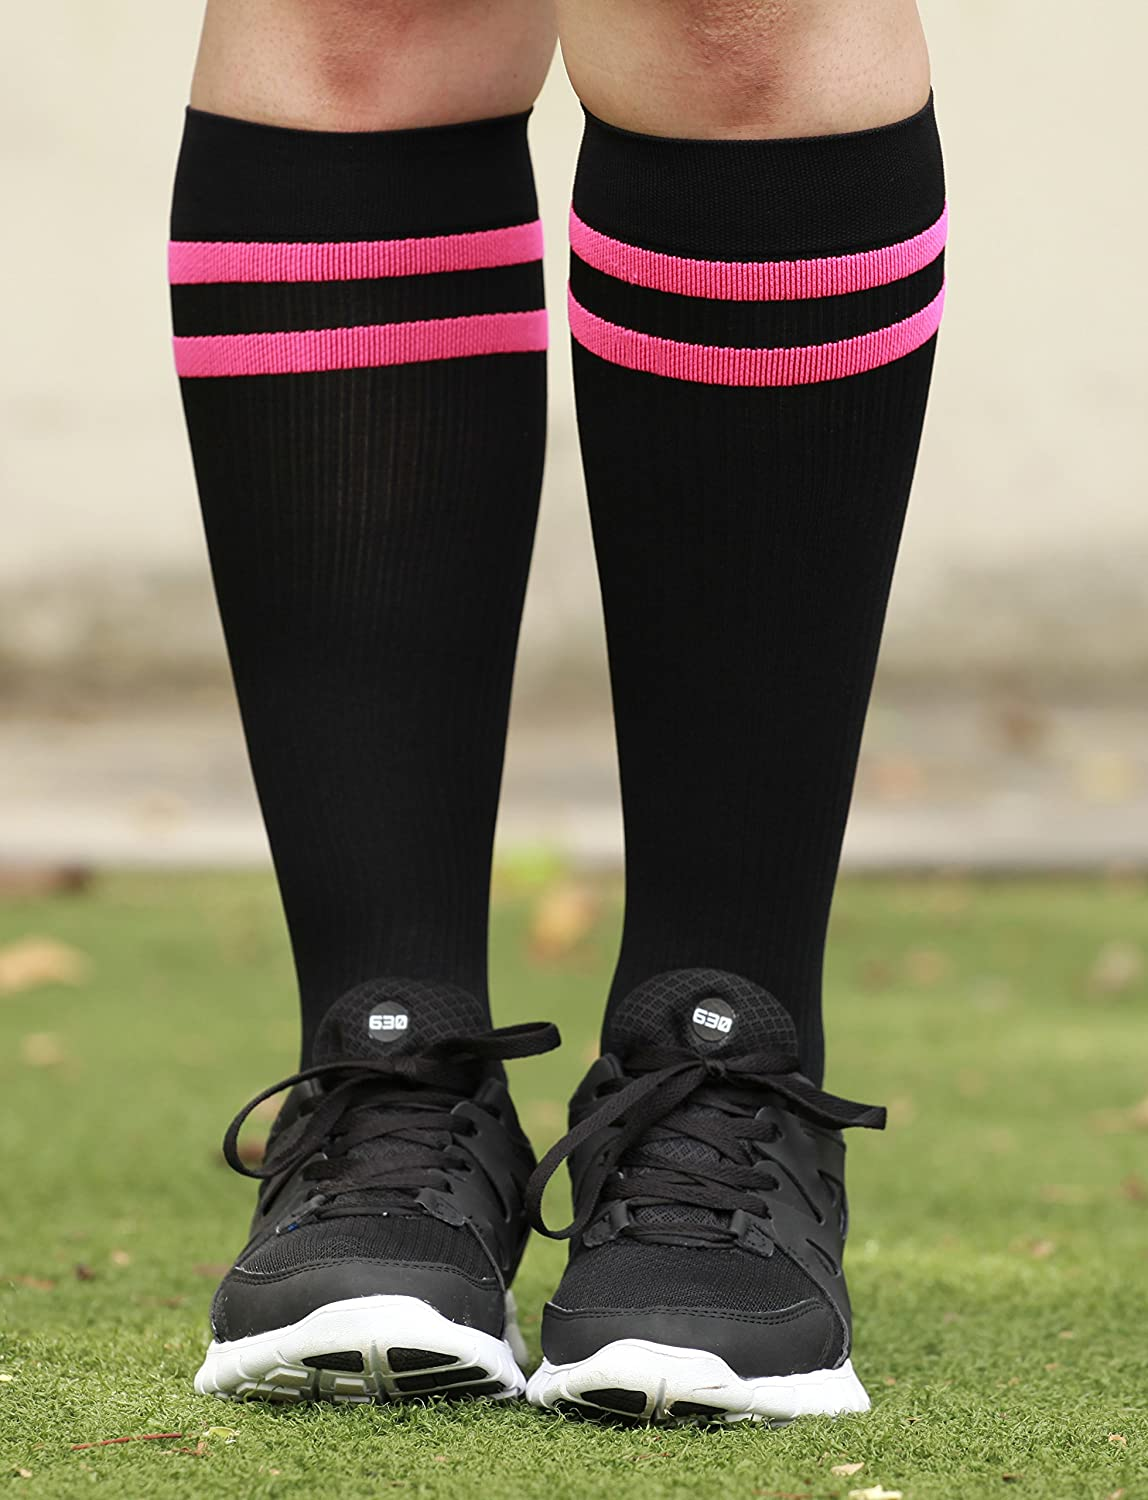 7ff38686d8 Amazon.com: Mojo Compression Socks Special edition Breast Cancer Ribbon -  Firm Graduated Medical Compression with moisture wicking Coolmax material  Knee ...